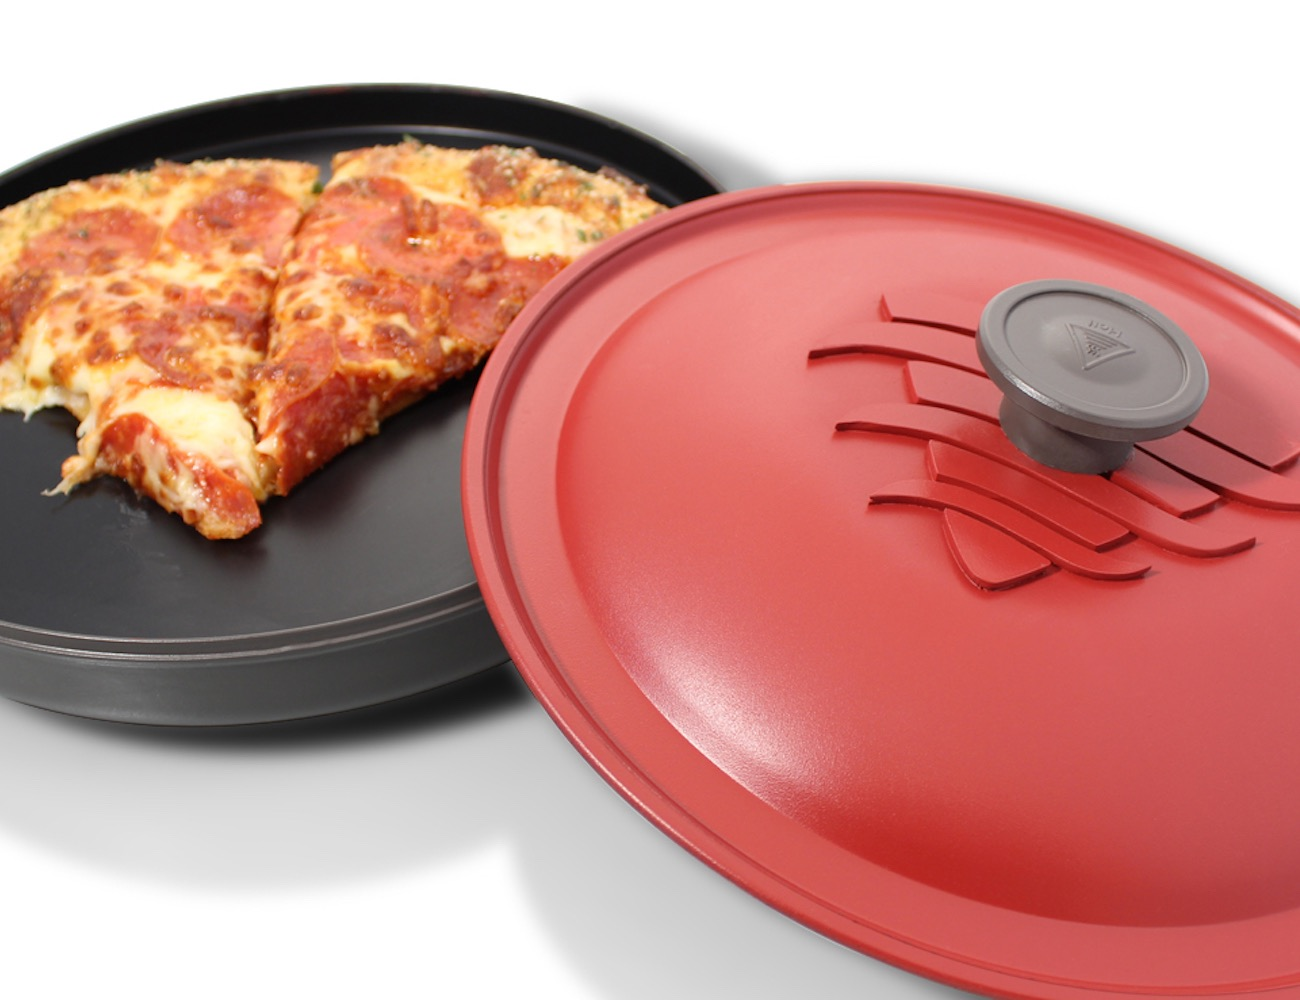 Reheatza Microwave Pizza Pan